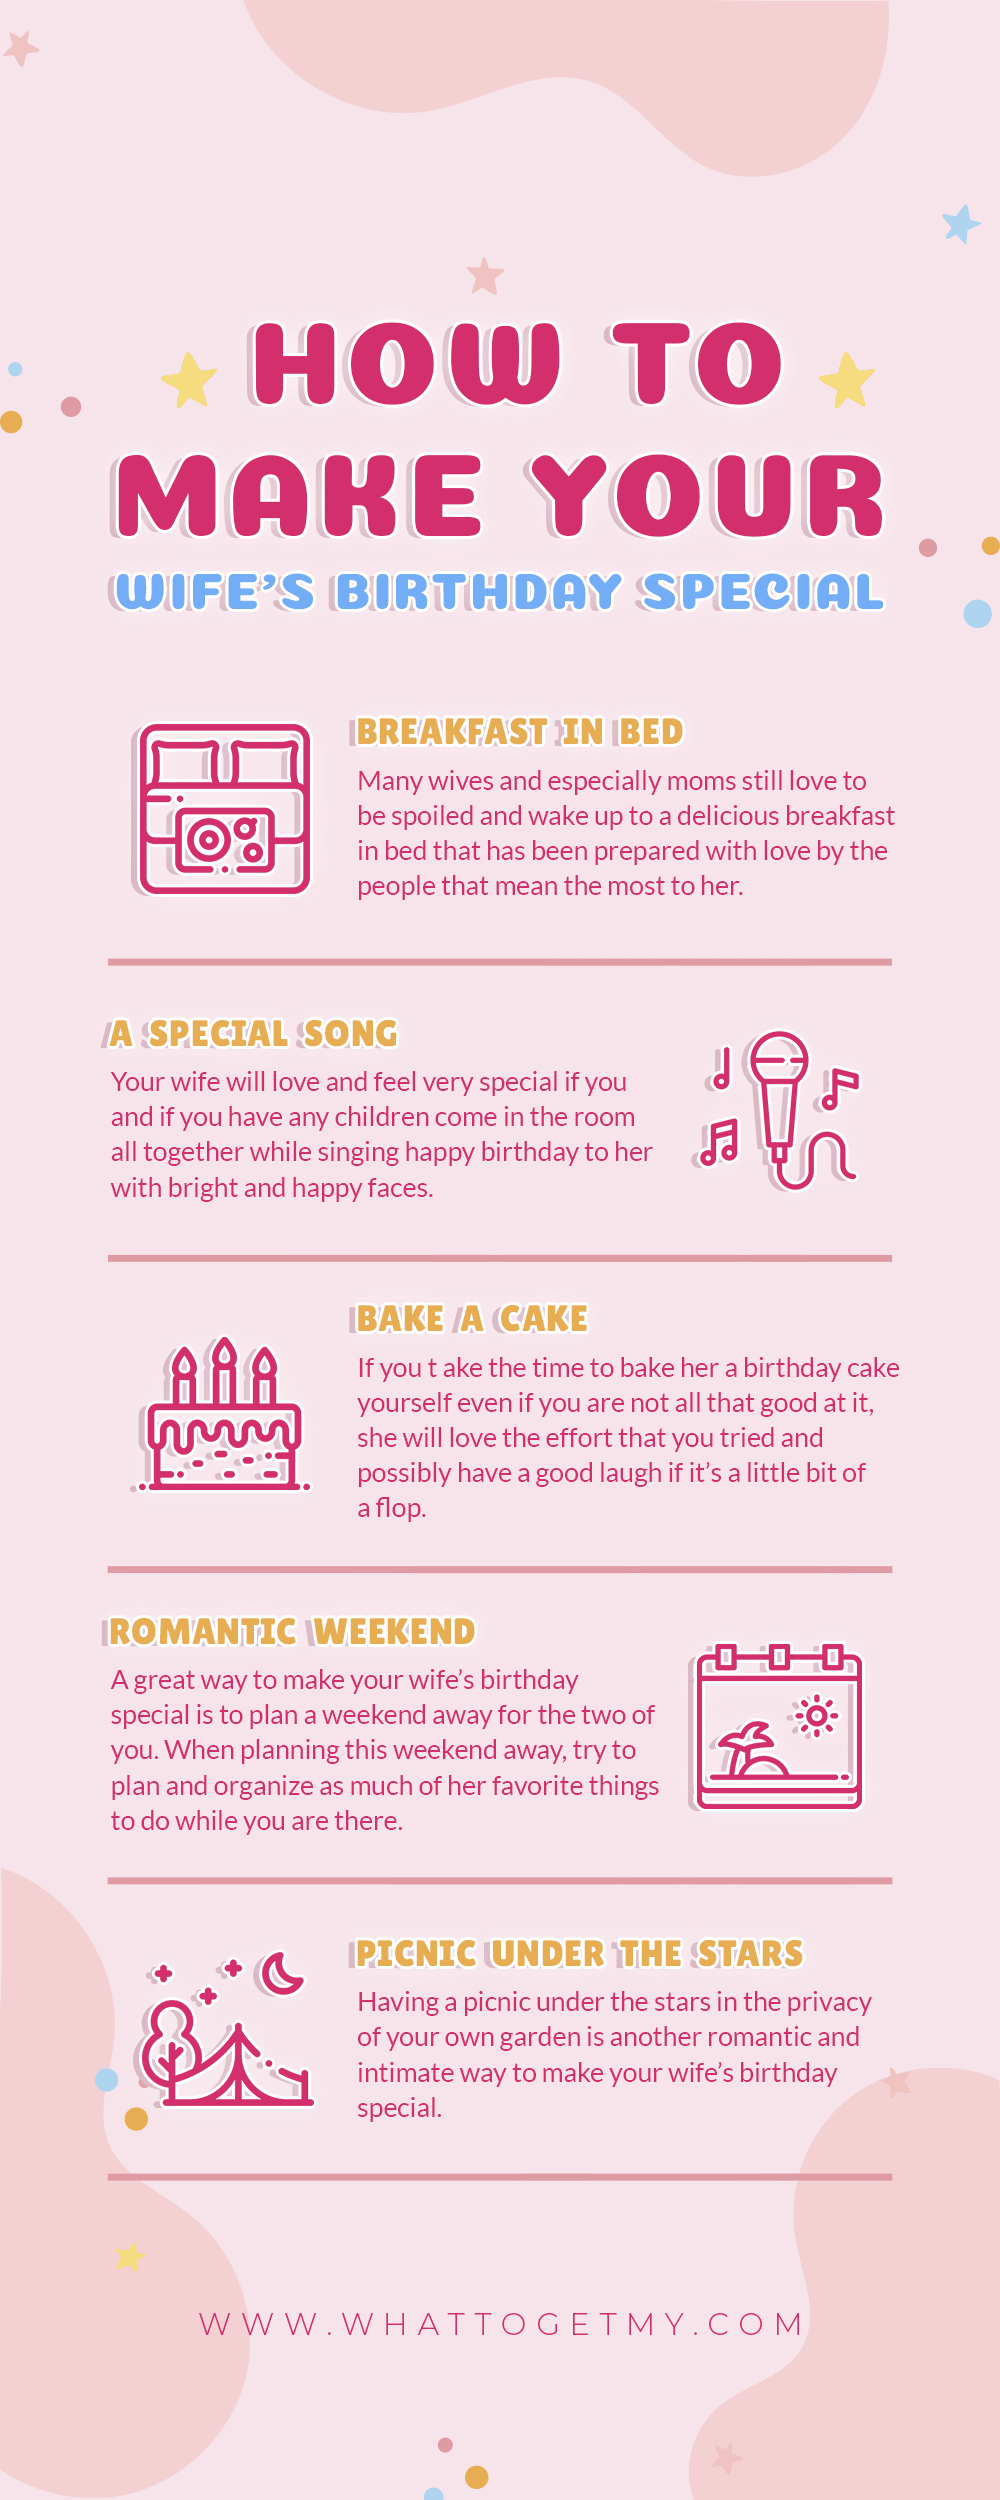 Infographic How to Make Your Wife's Birthday Special-min